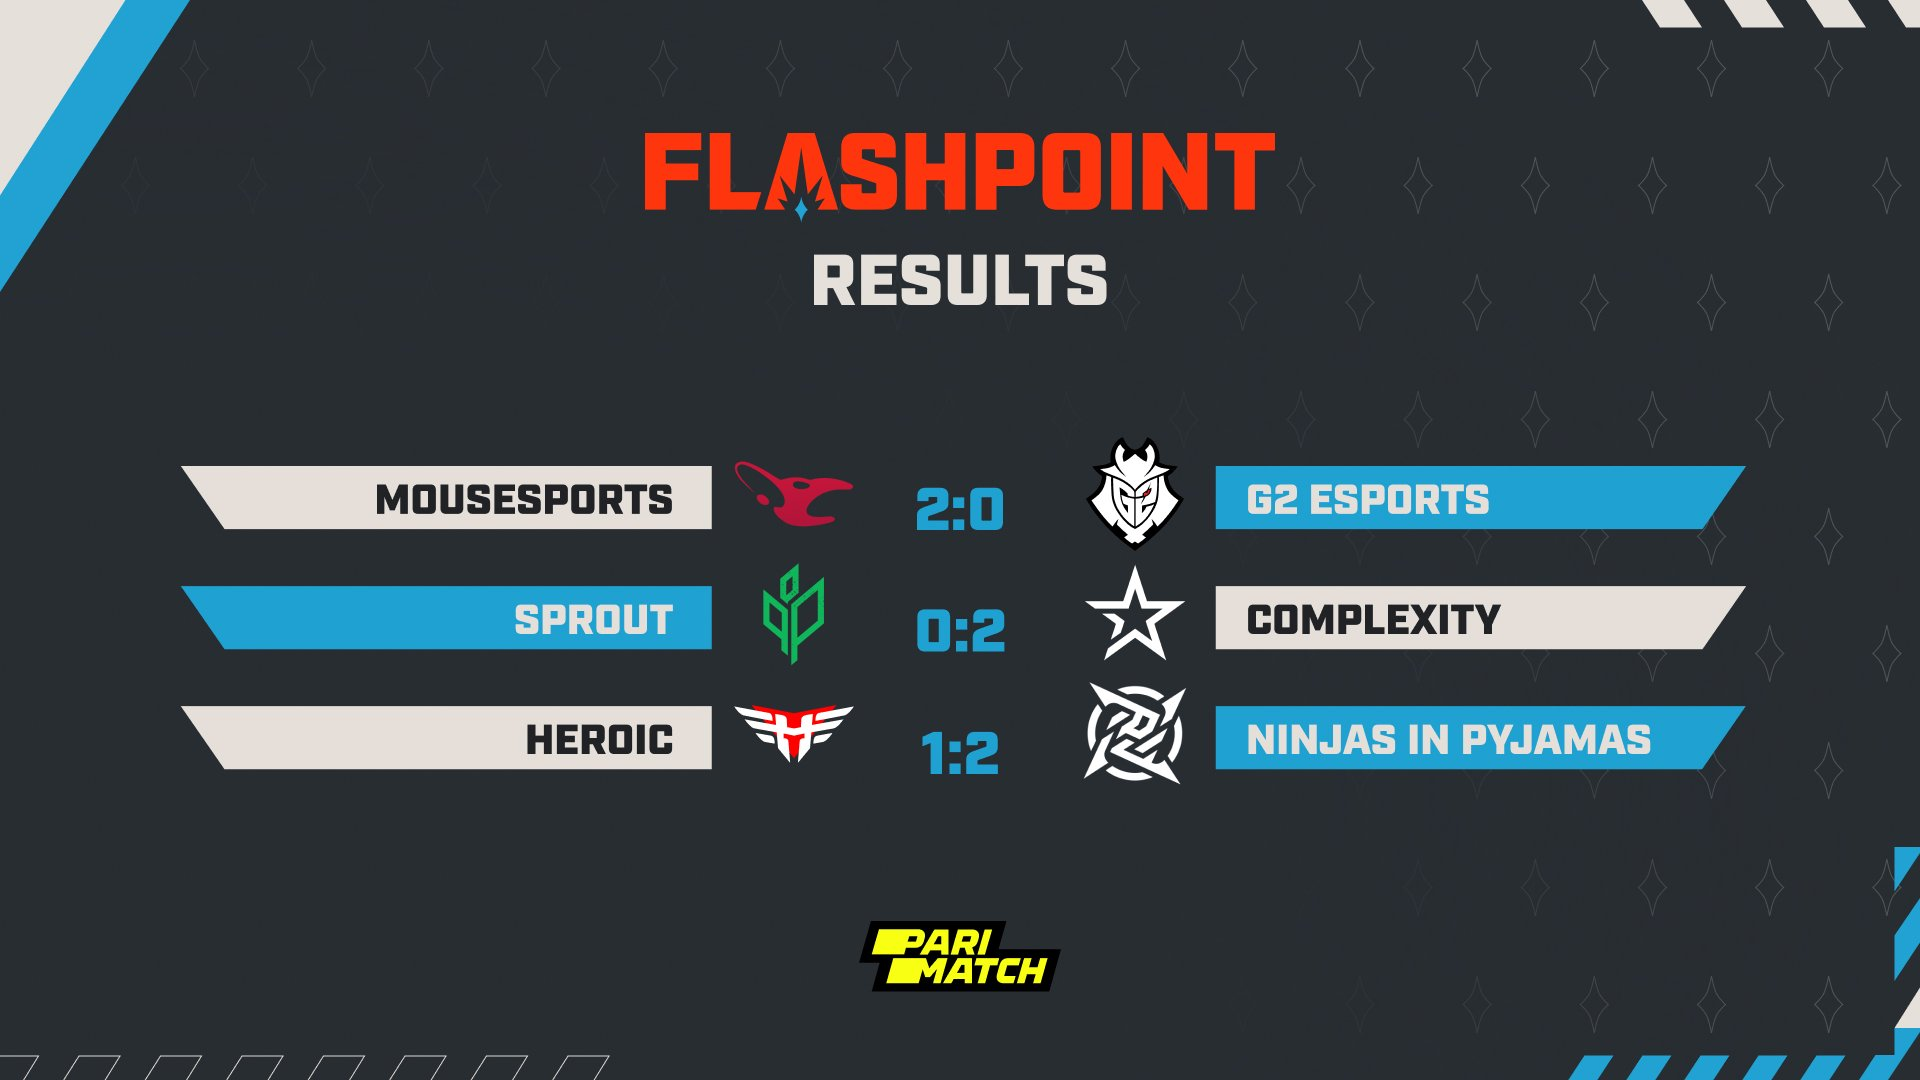 Flashpoint 3 week 3 day 3 results